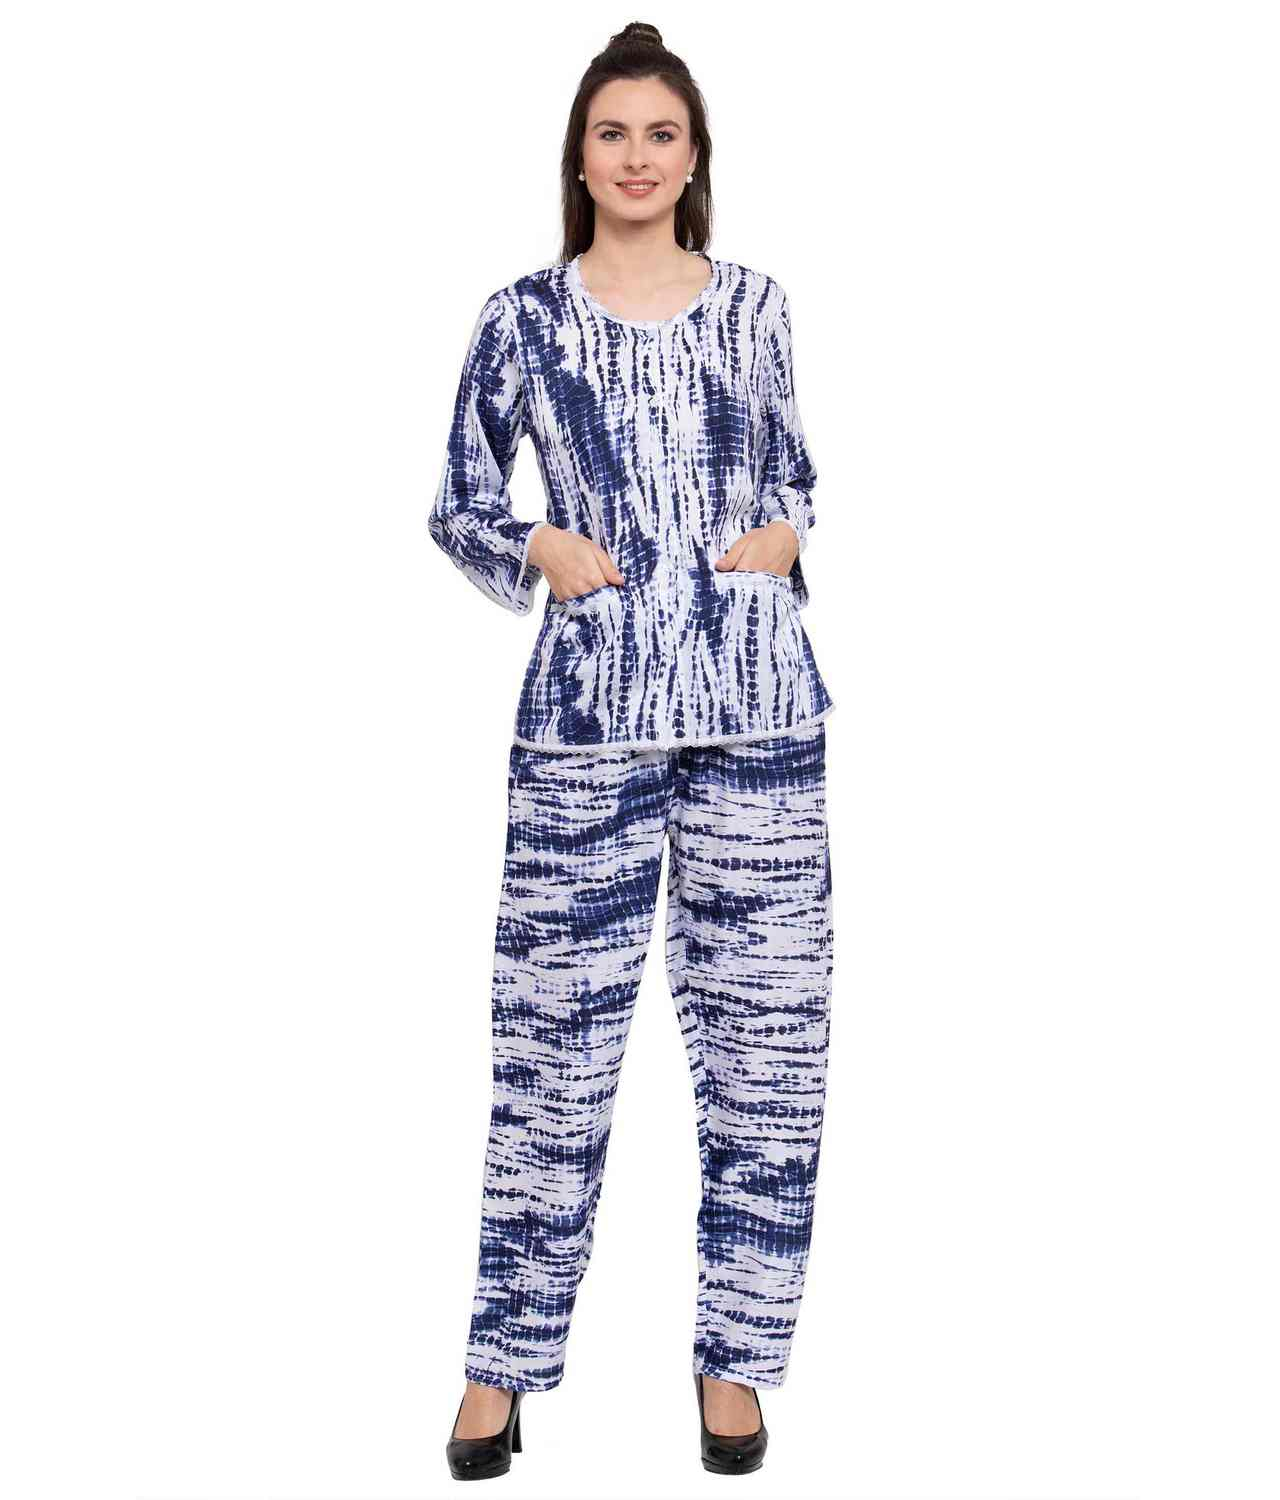 Abstract Print Night Top and Pyjama Set in Blue